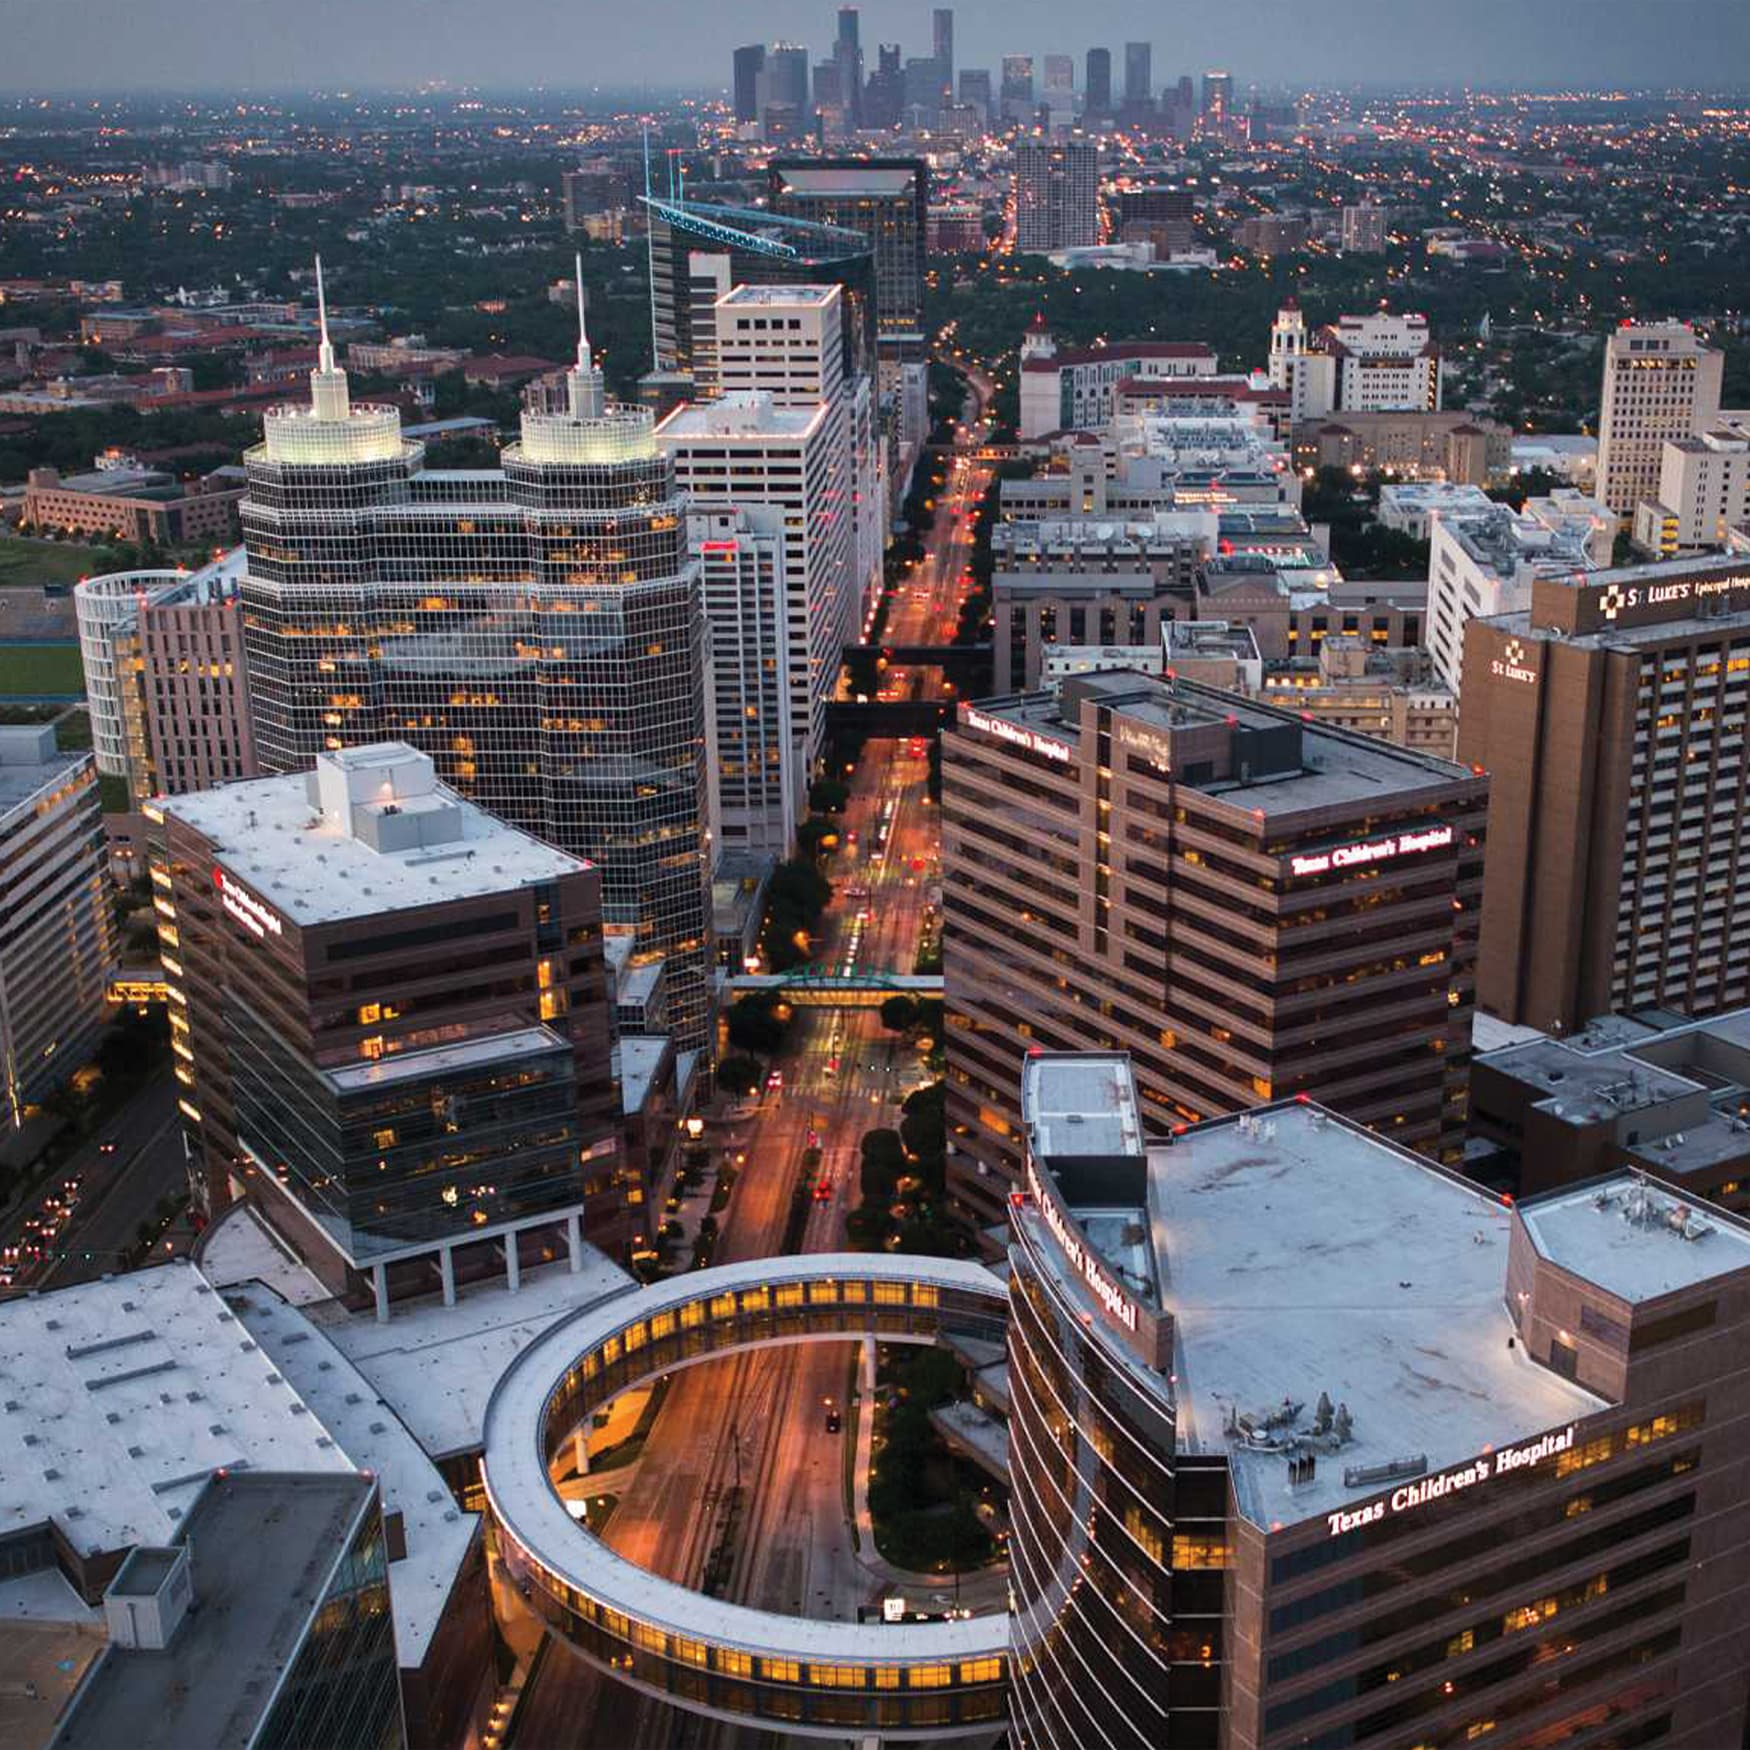 An aerial photograph of Houston's Texas Medical Center, the largest medical complex in the world.